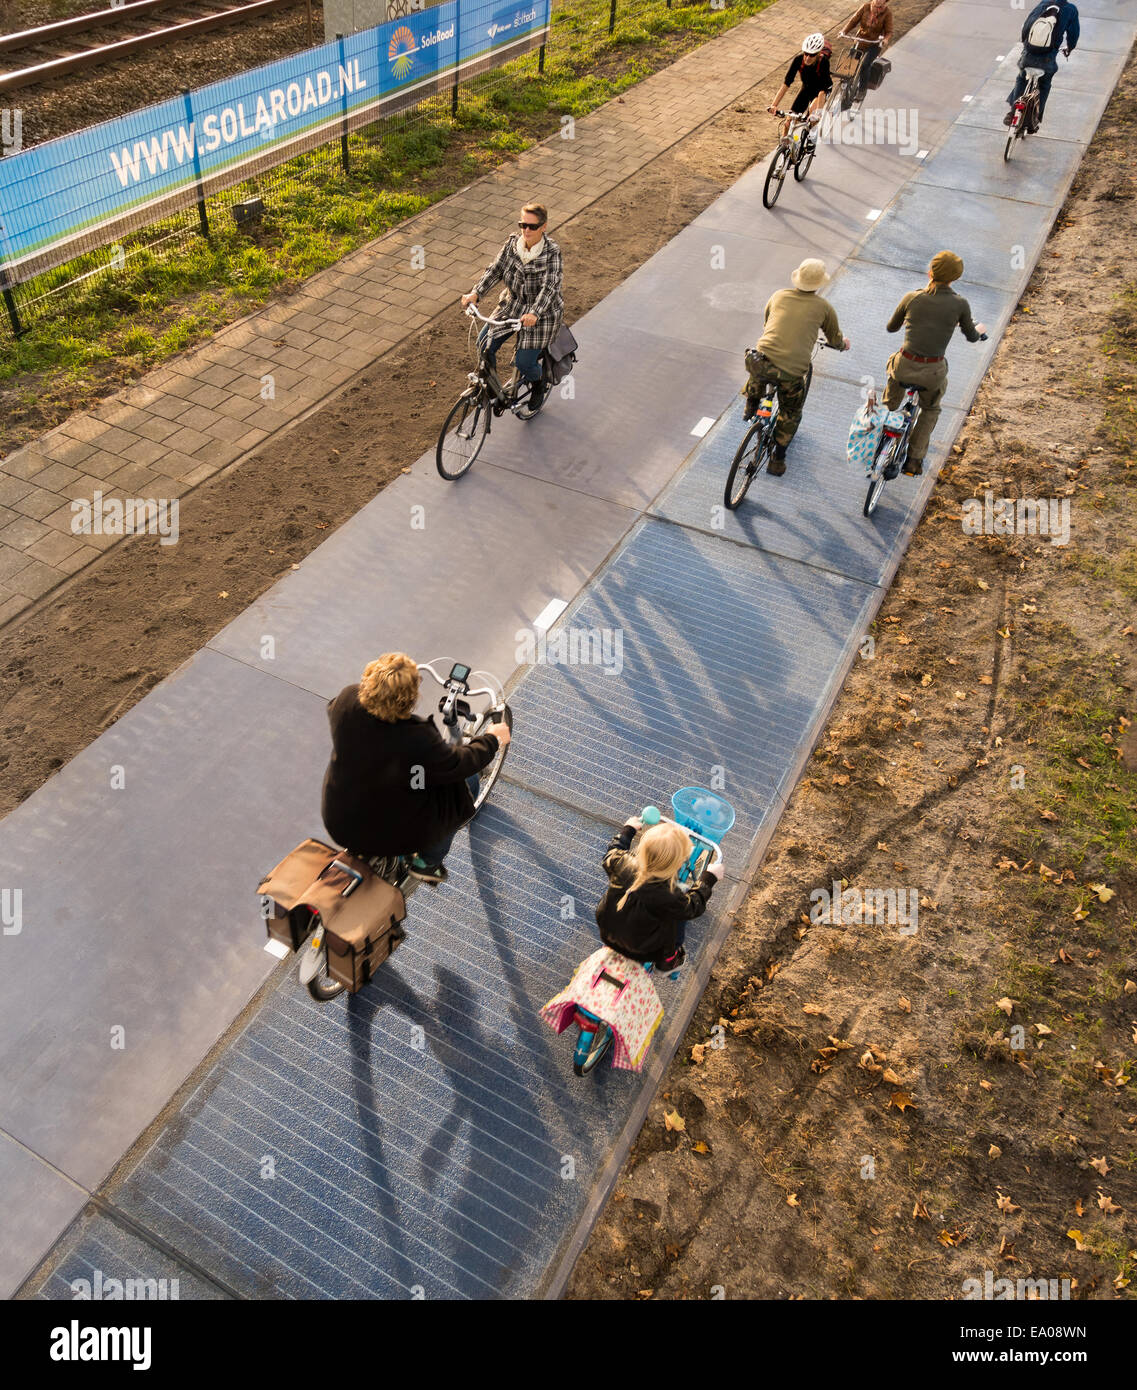 Netherlands, Holland, Krommenie, world's first cycle lane made from solar cells with cyclists people on busy - Stock Image